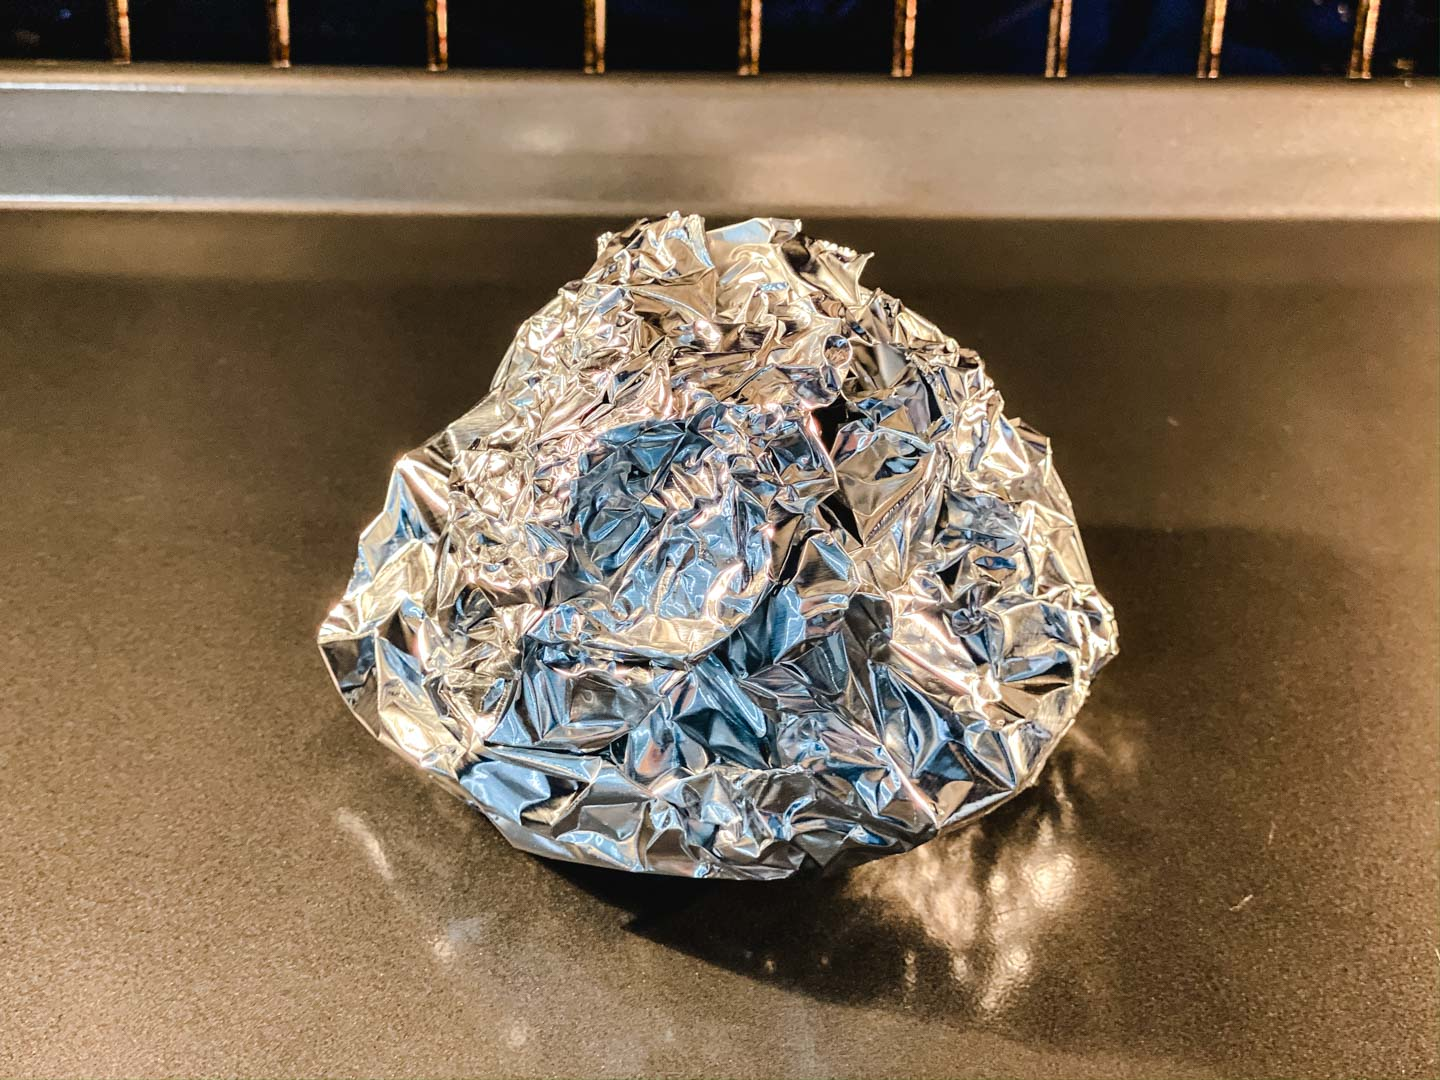 Foil ball in the oven